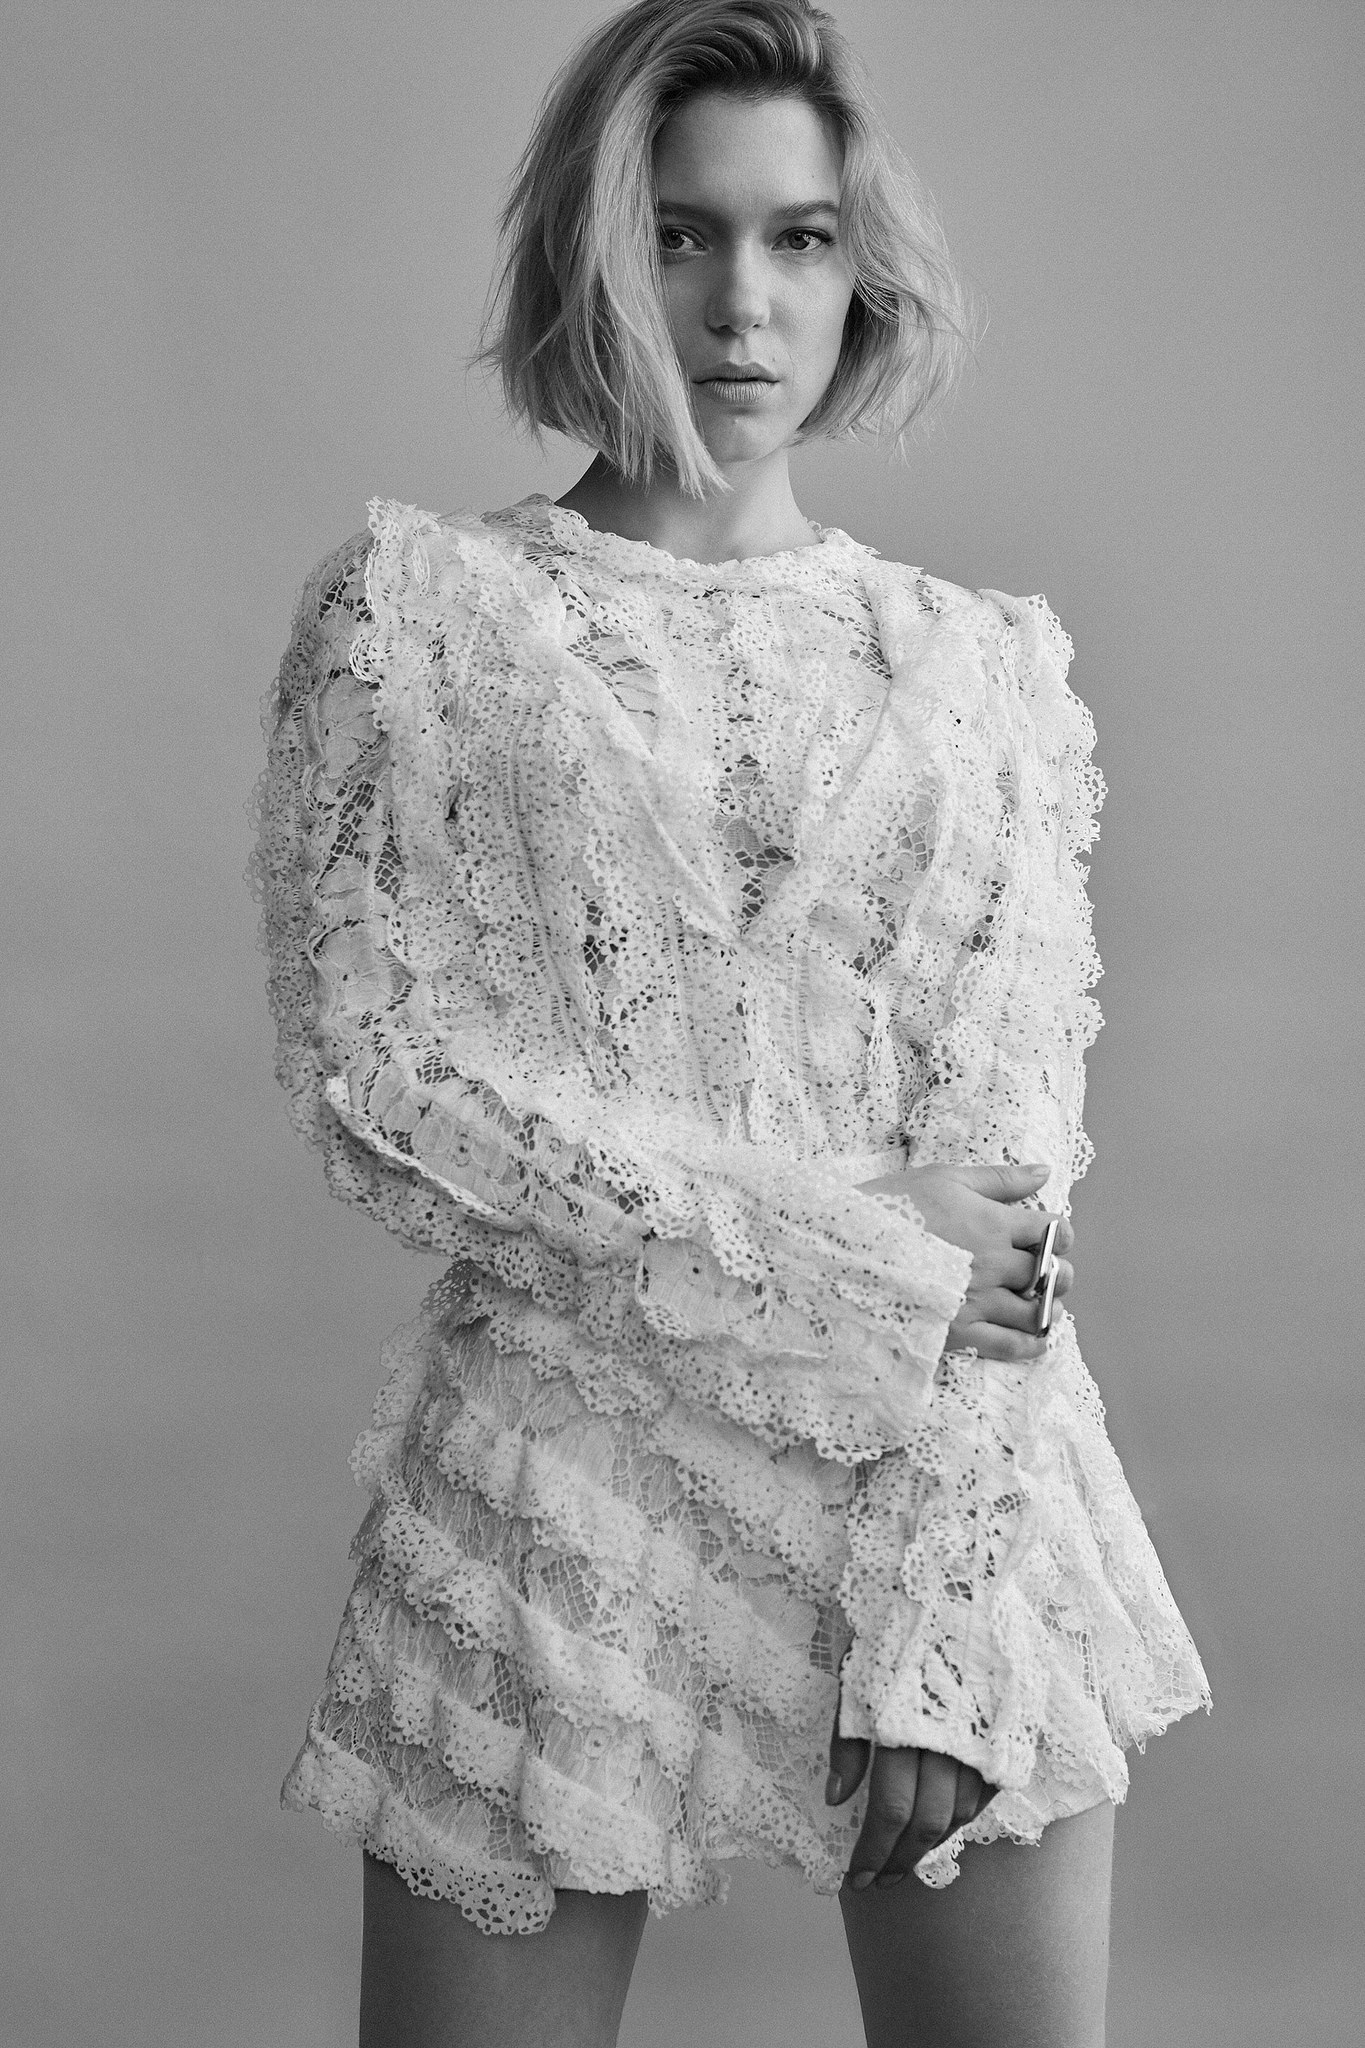 L 233 A Seydoux Images Lea Seydoux Madame Figaro Photoshoot